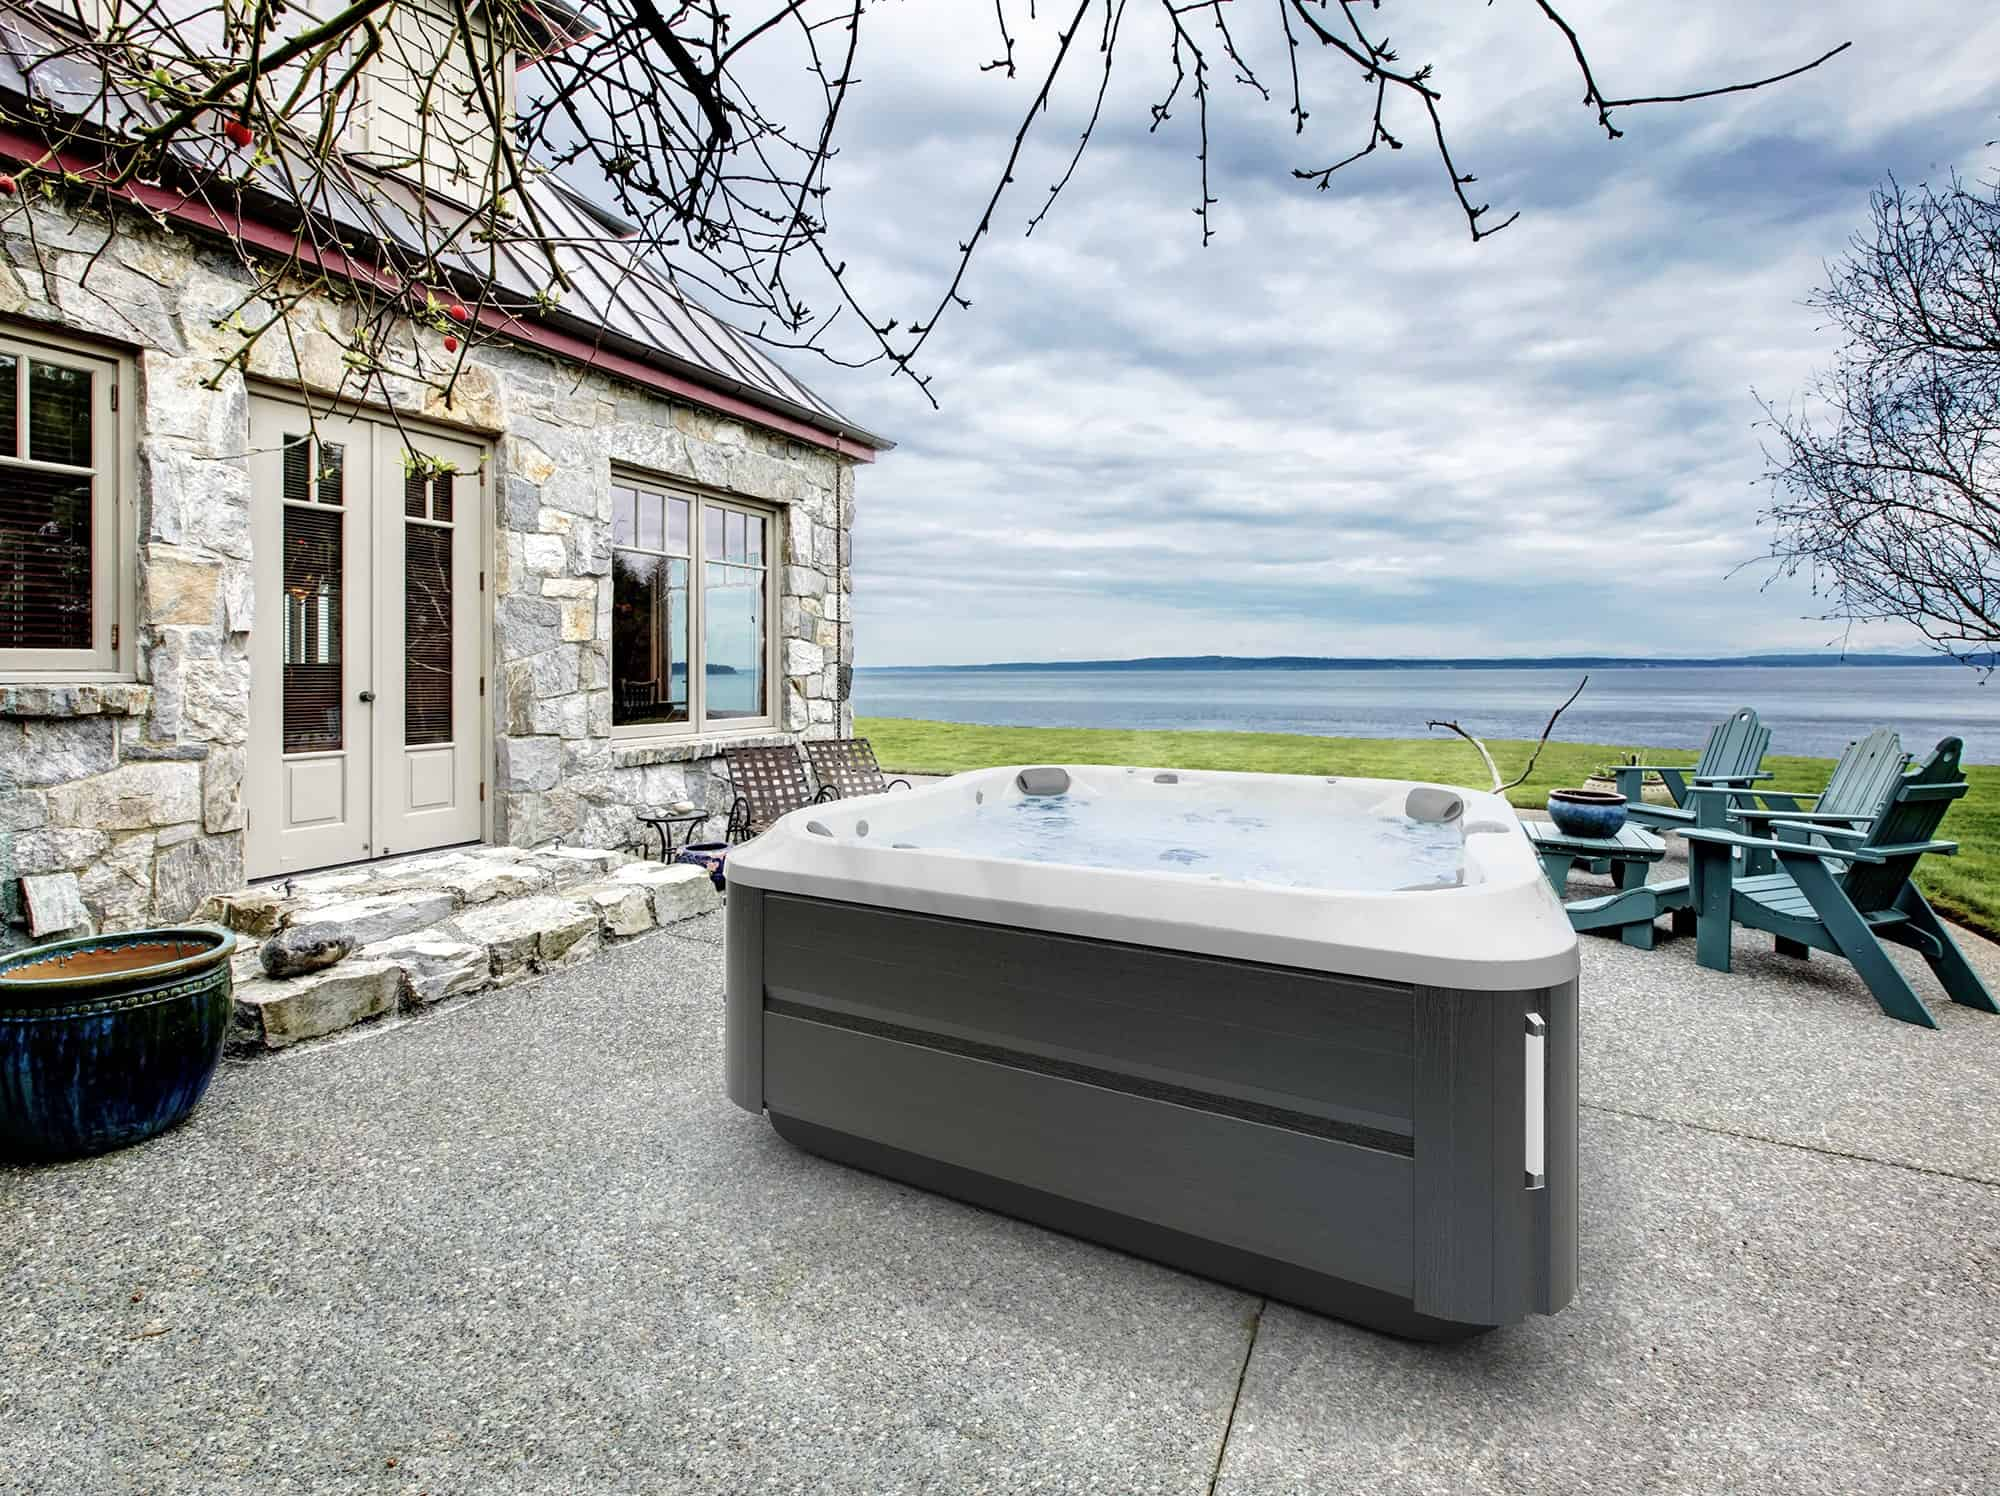 J-385 Jacuzzi Hot Tub seats up to 7 adults